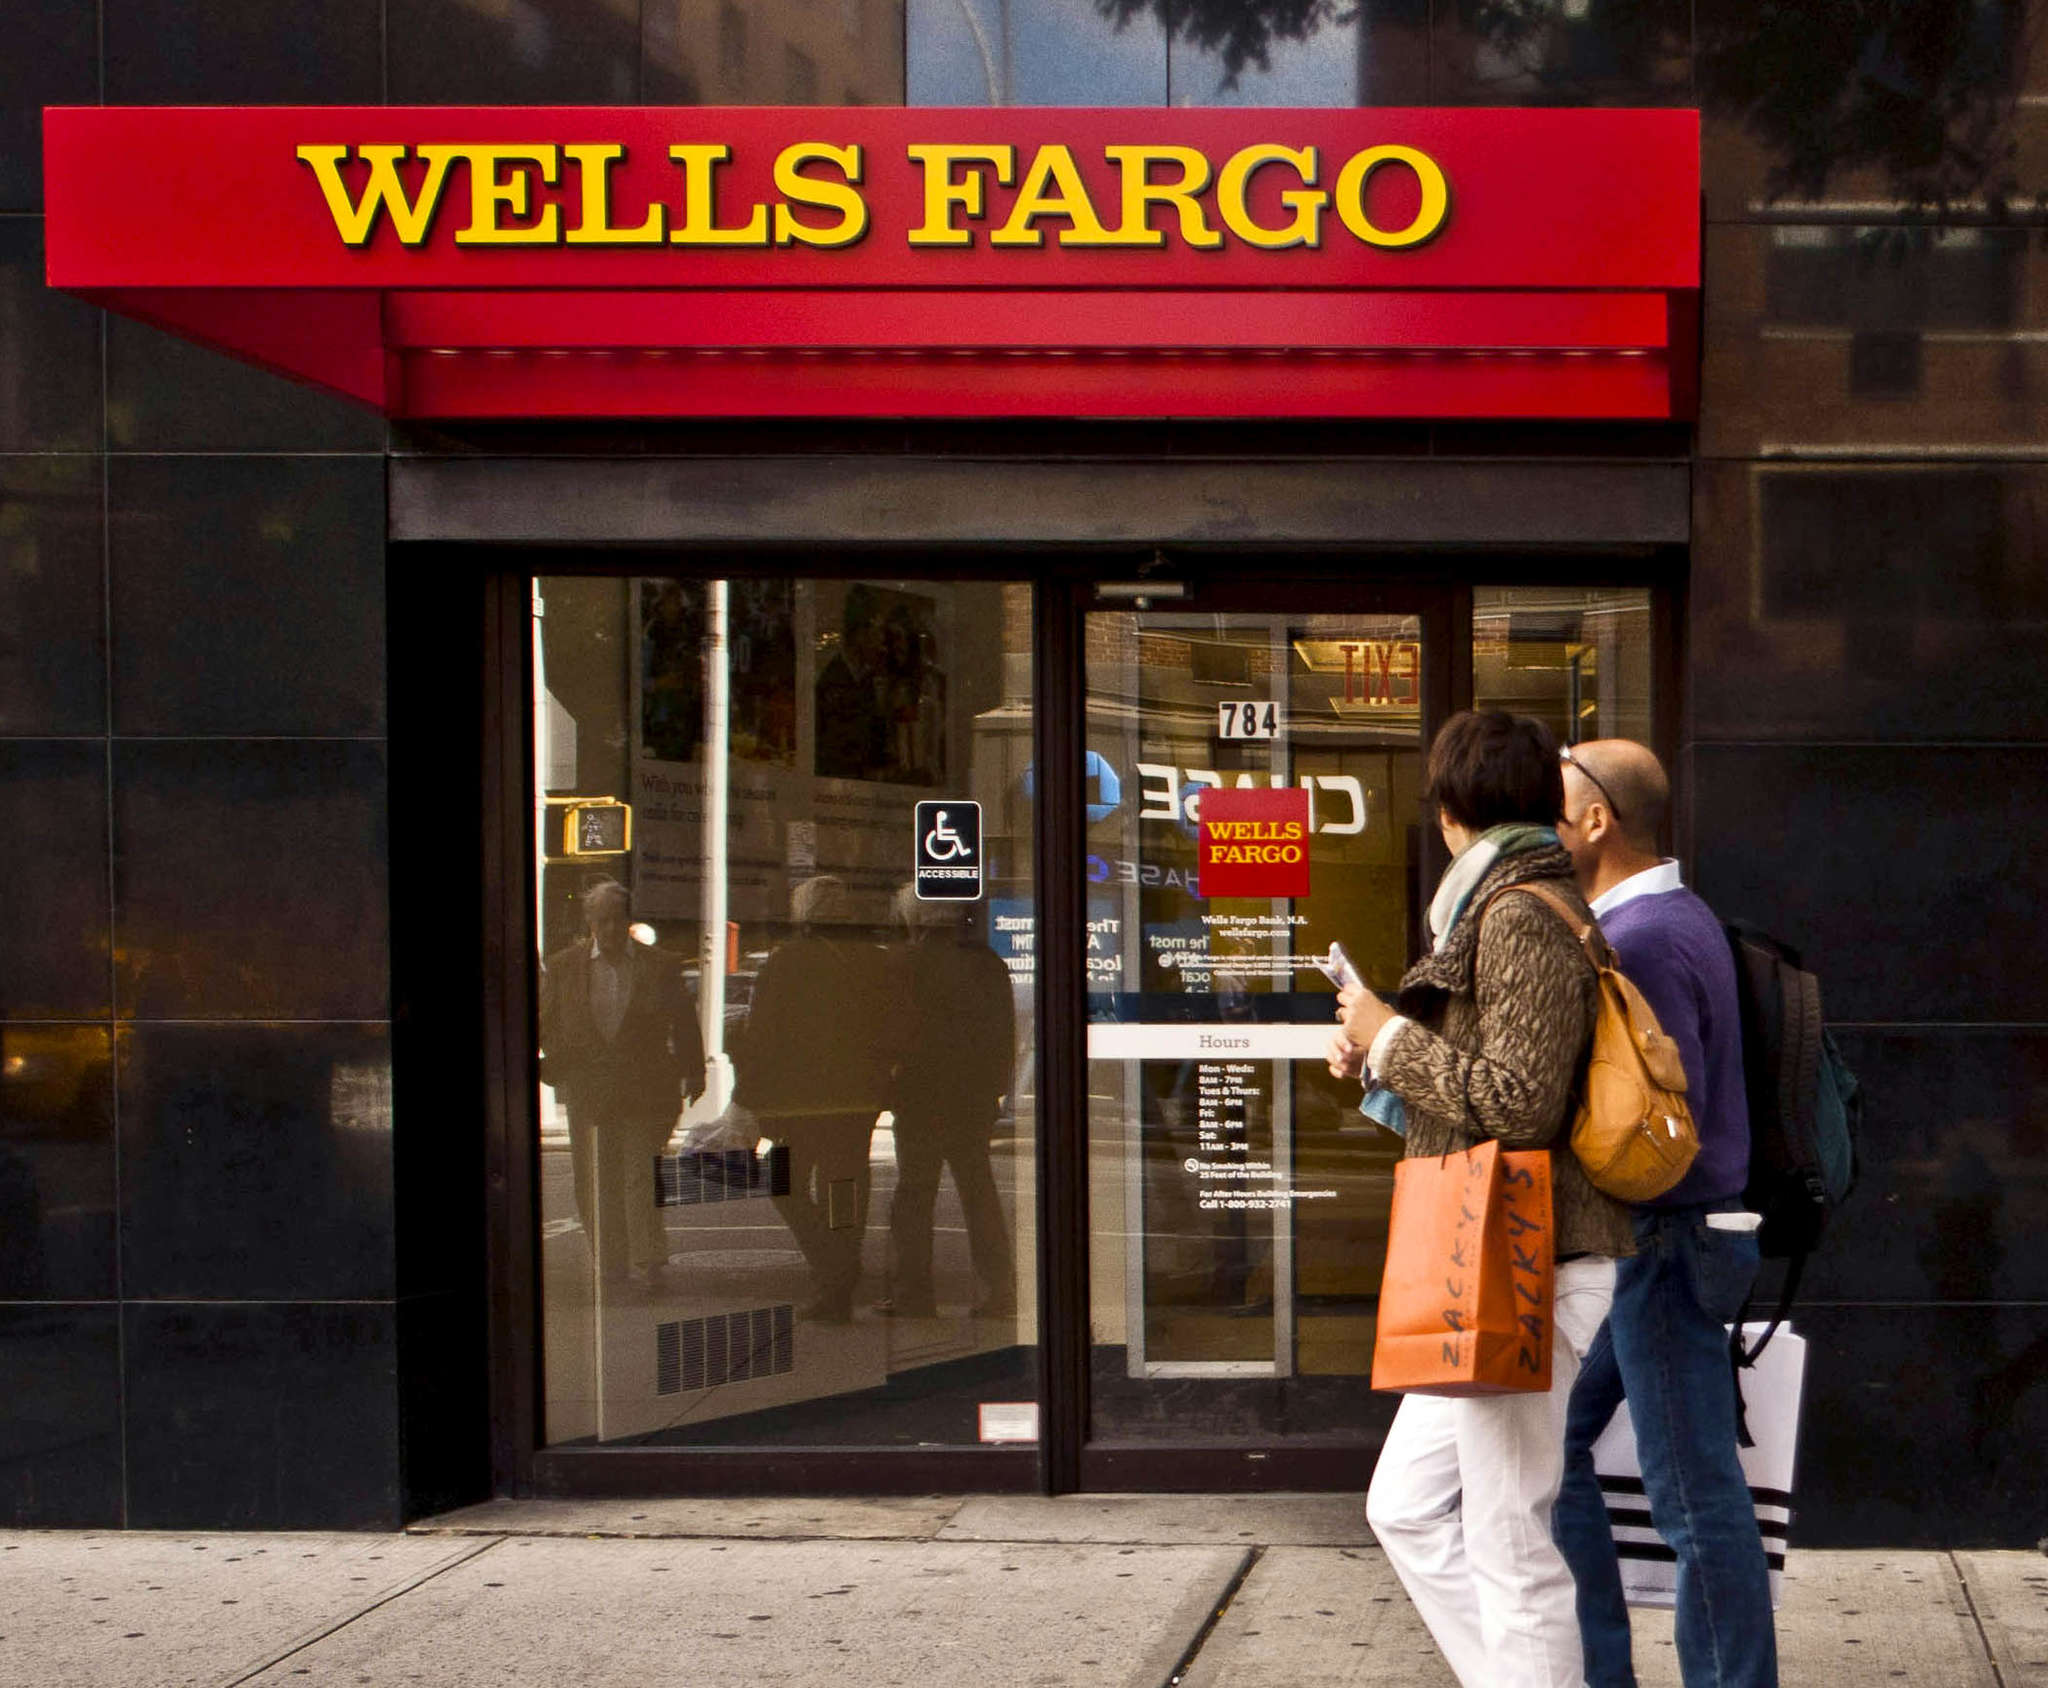 After the recent aggressive bonus disclosures at Wells Fargo, Philadelphia is looking into a boycott.